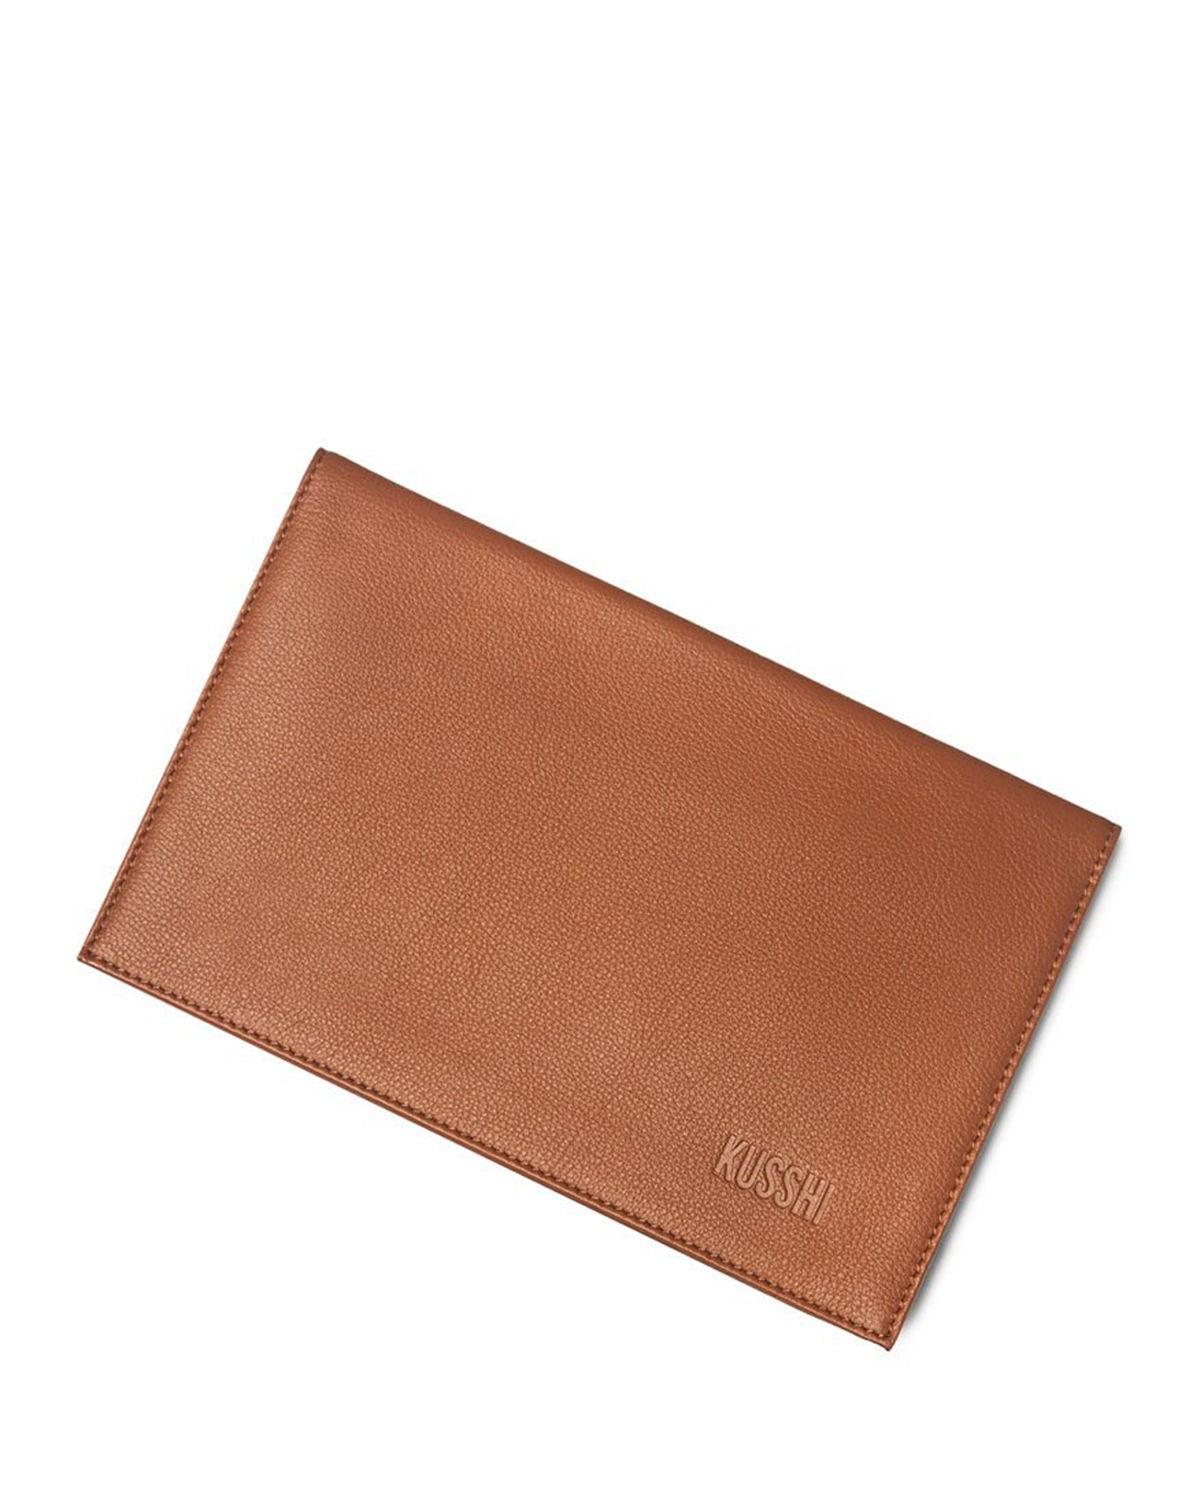 Leather Clutch Cover + Brush Organizer